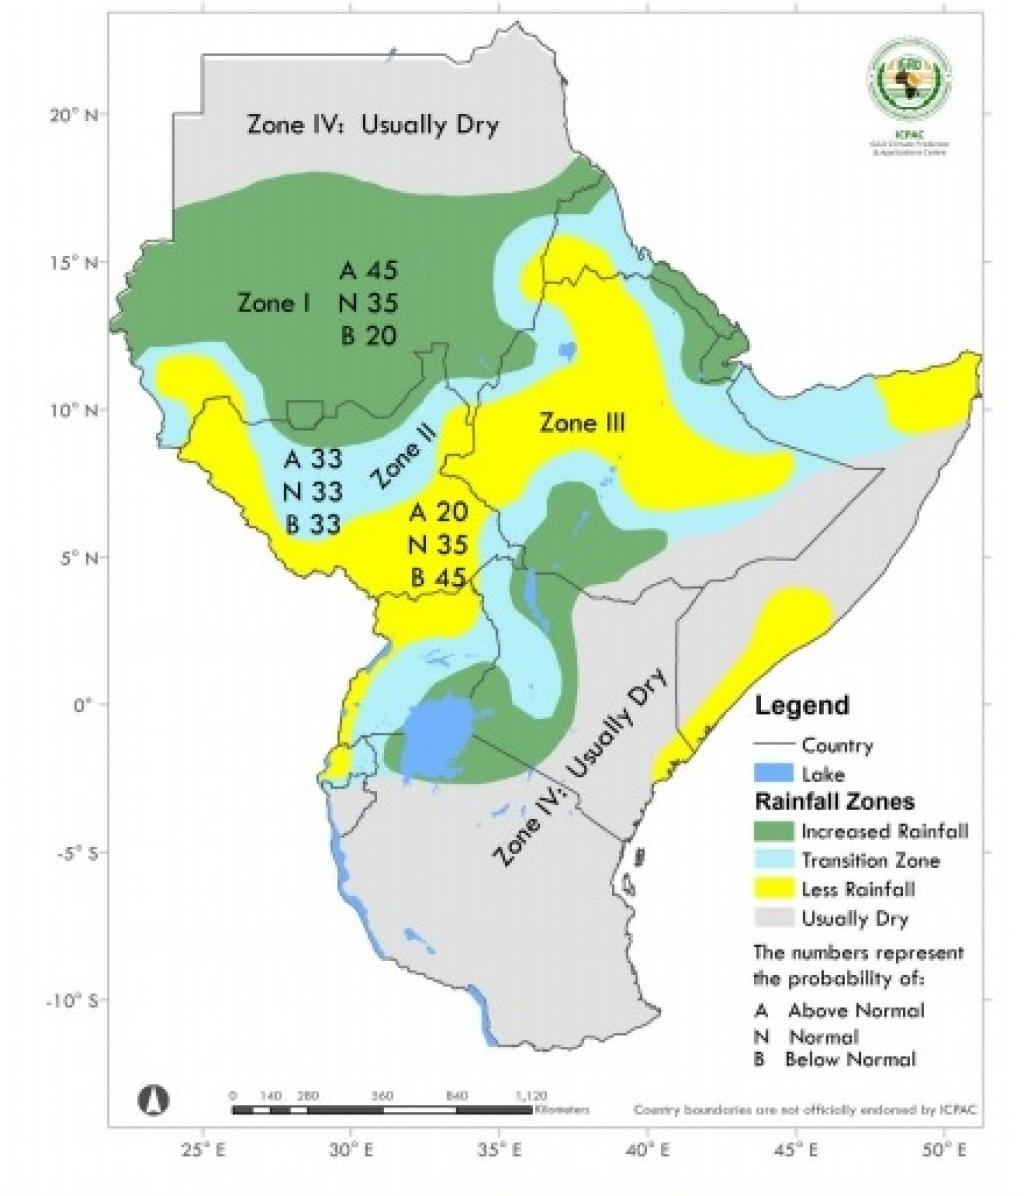 Greater Horn of Africa consensus rainfall climate outlook for June to September 2019 rainfall season. Photo: ICPAC_IGAD_UNOSAT